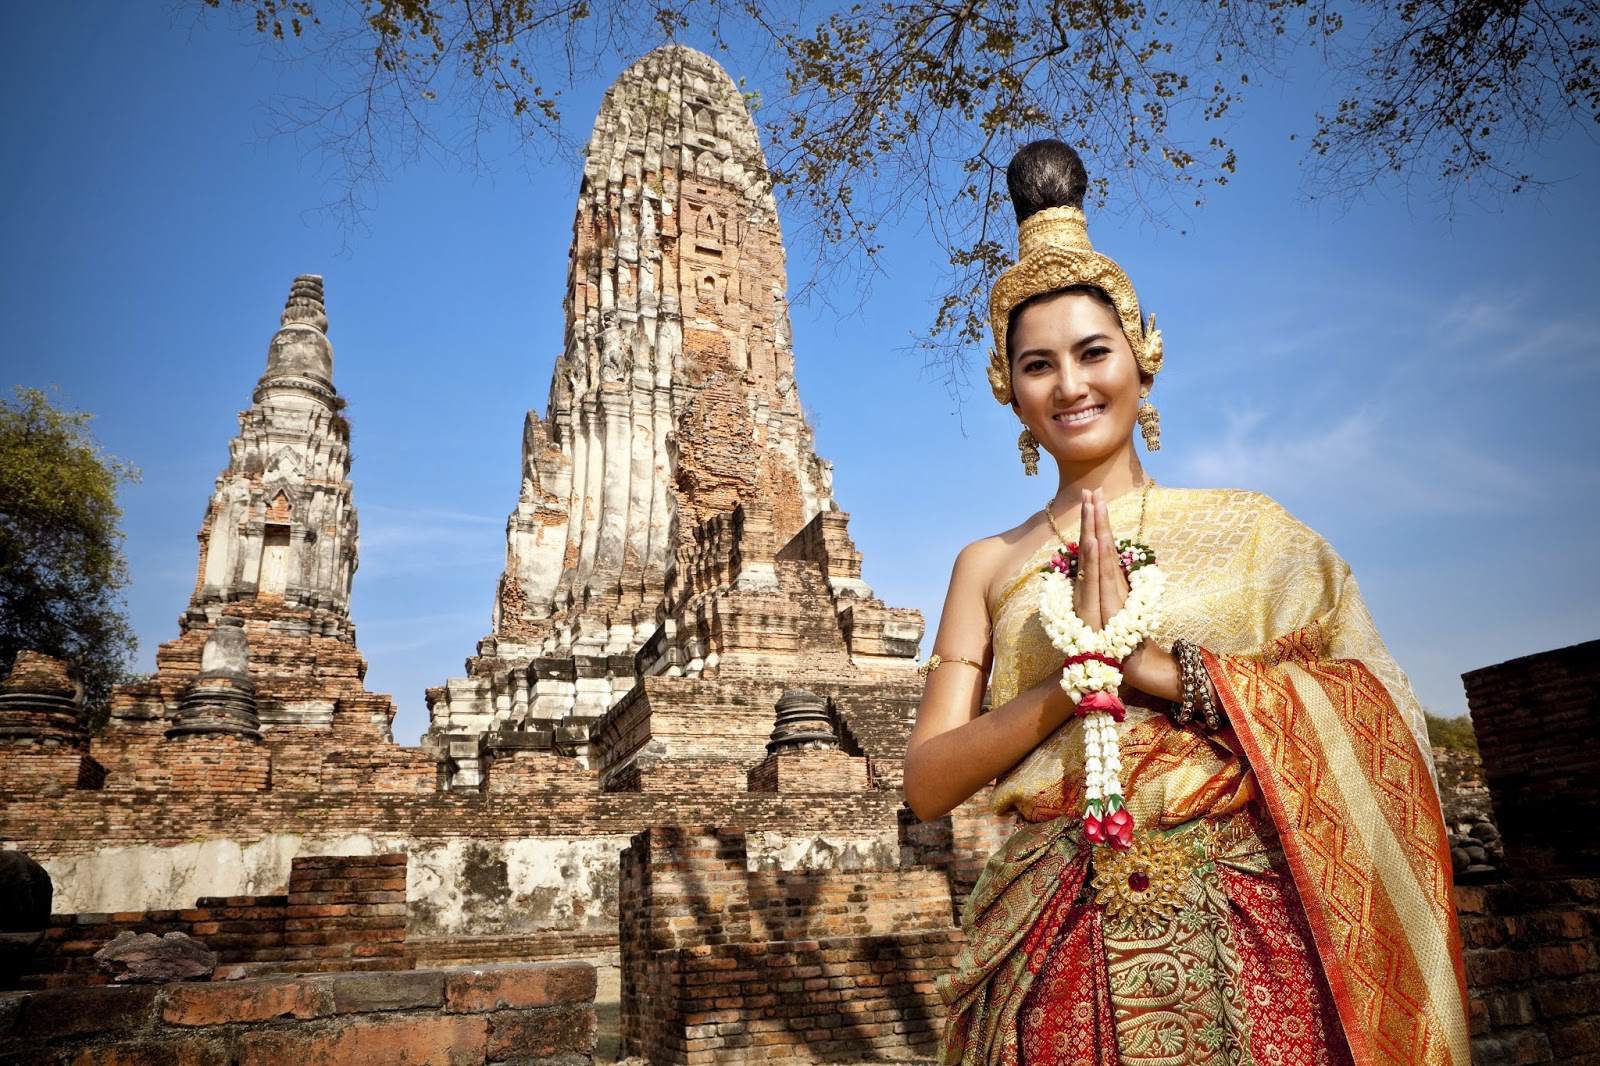 a cultural analysis of thailand Thailand is the only country in south-east asia to have escaped colonial rule buddhist religion, the monarchy and the military have helped to shape its society and politics the military has.